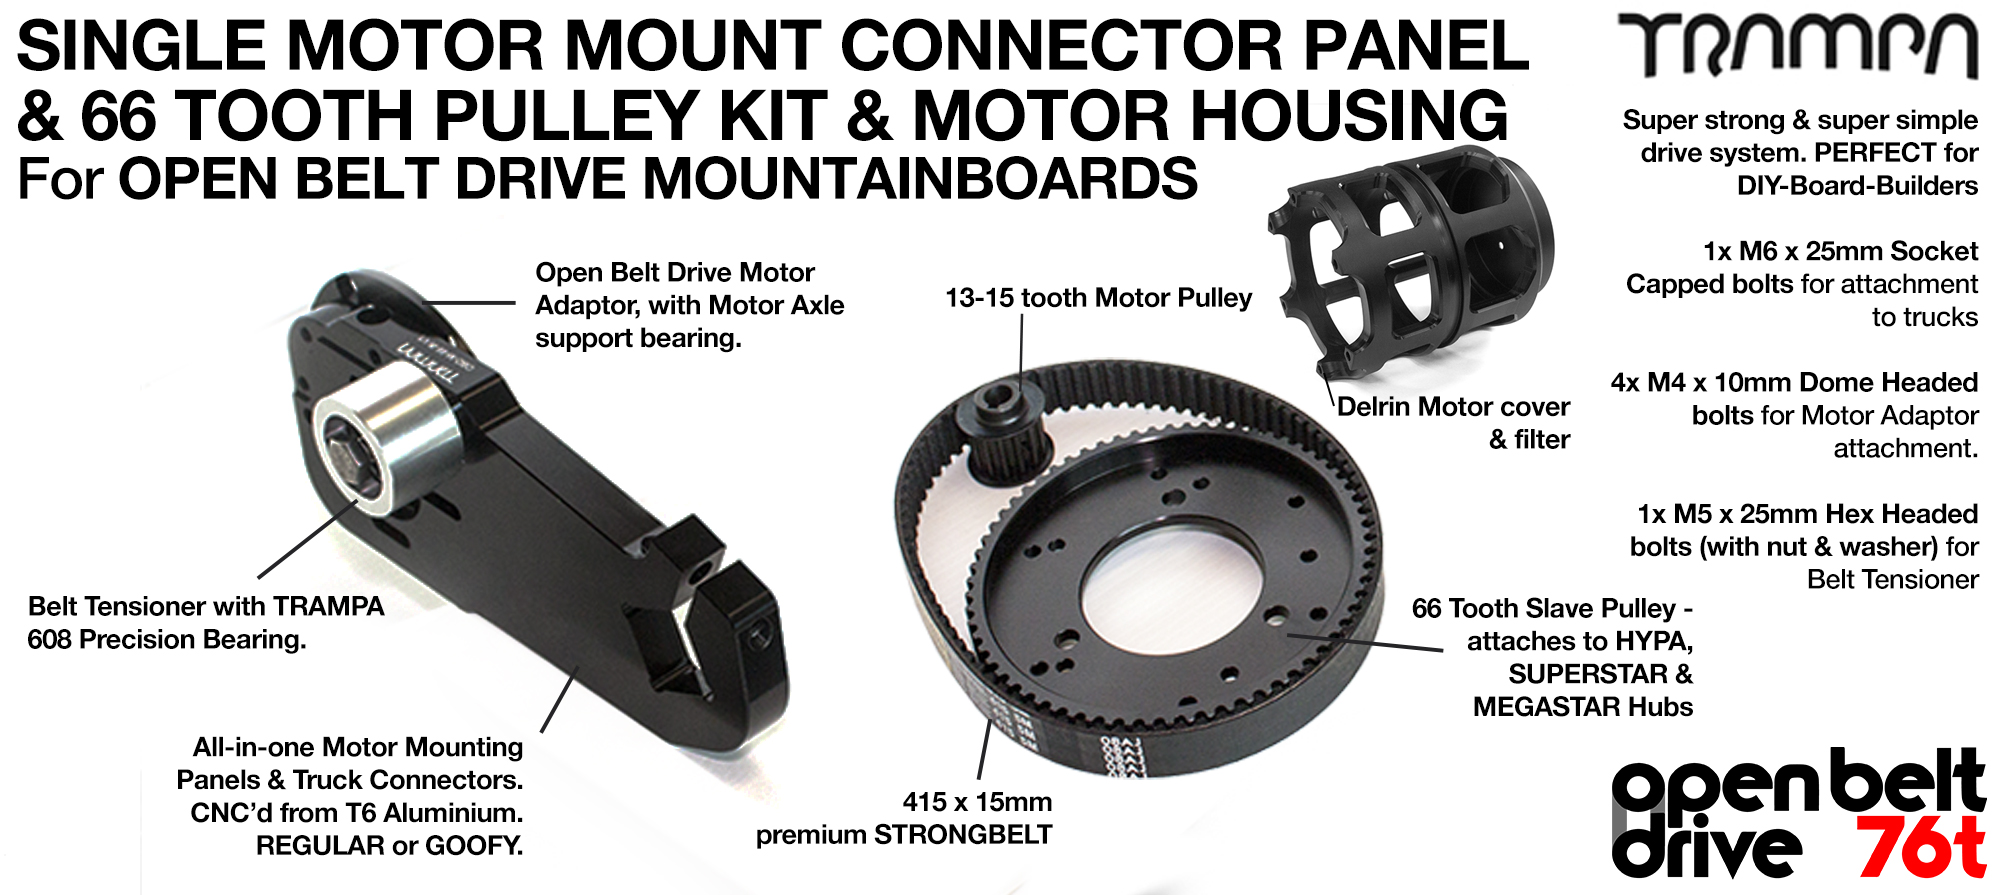 76T OBD Motor Mount with 76 tooth Pulley Kit & Motor Protection - SINGLE